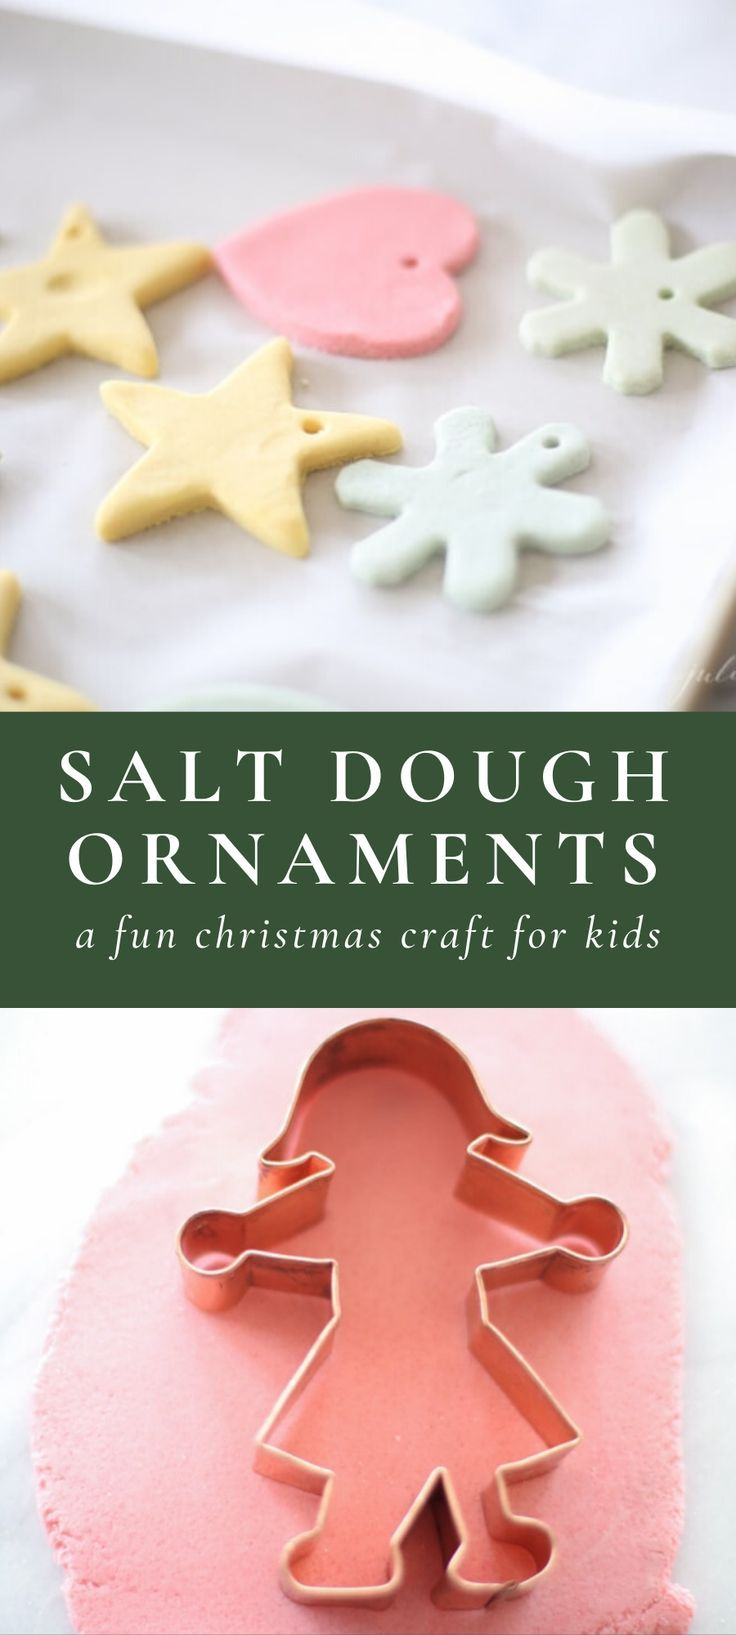 How To Make Color Salt Dough Ornaments Dough Ornaments Salt Dough Ornaments Salt Dough Crafts